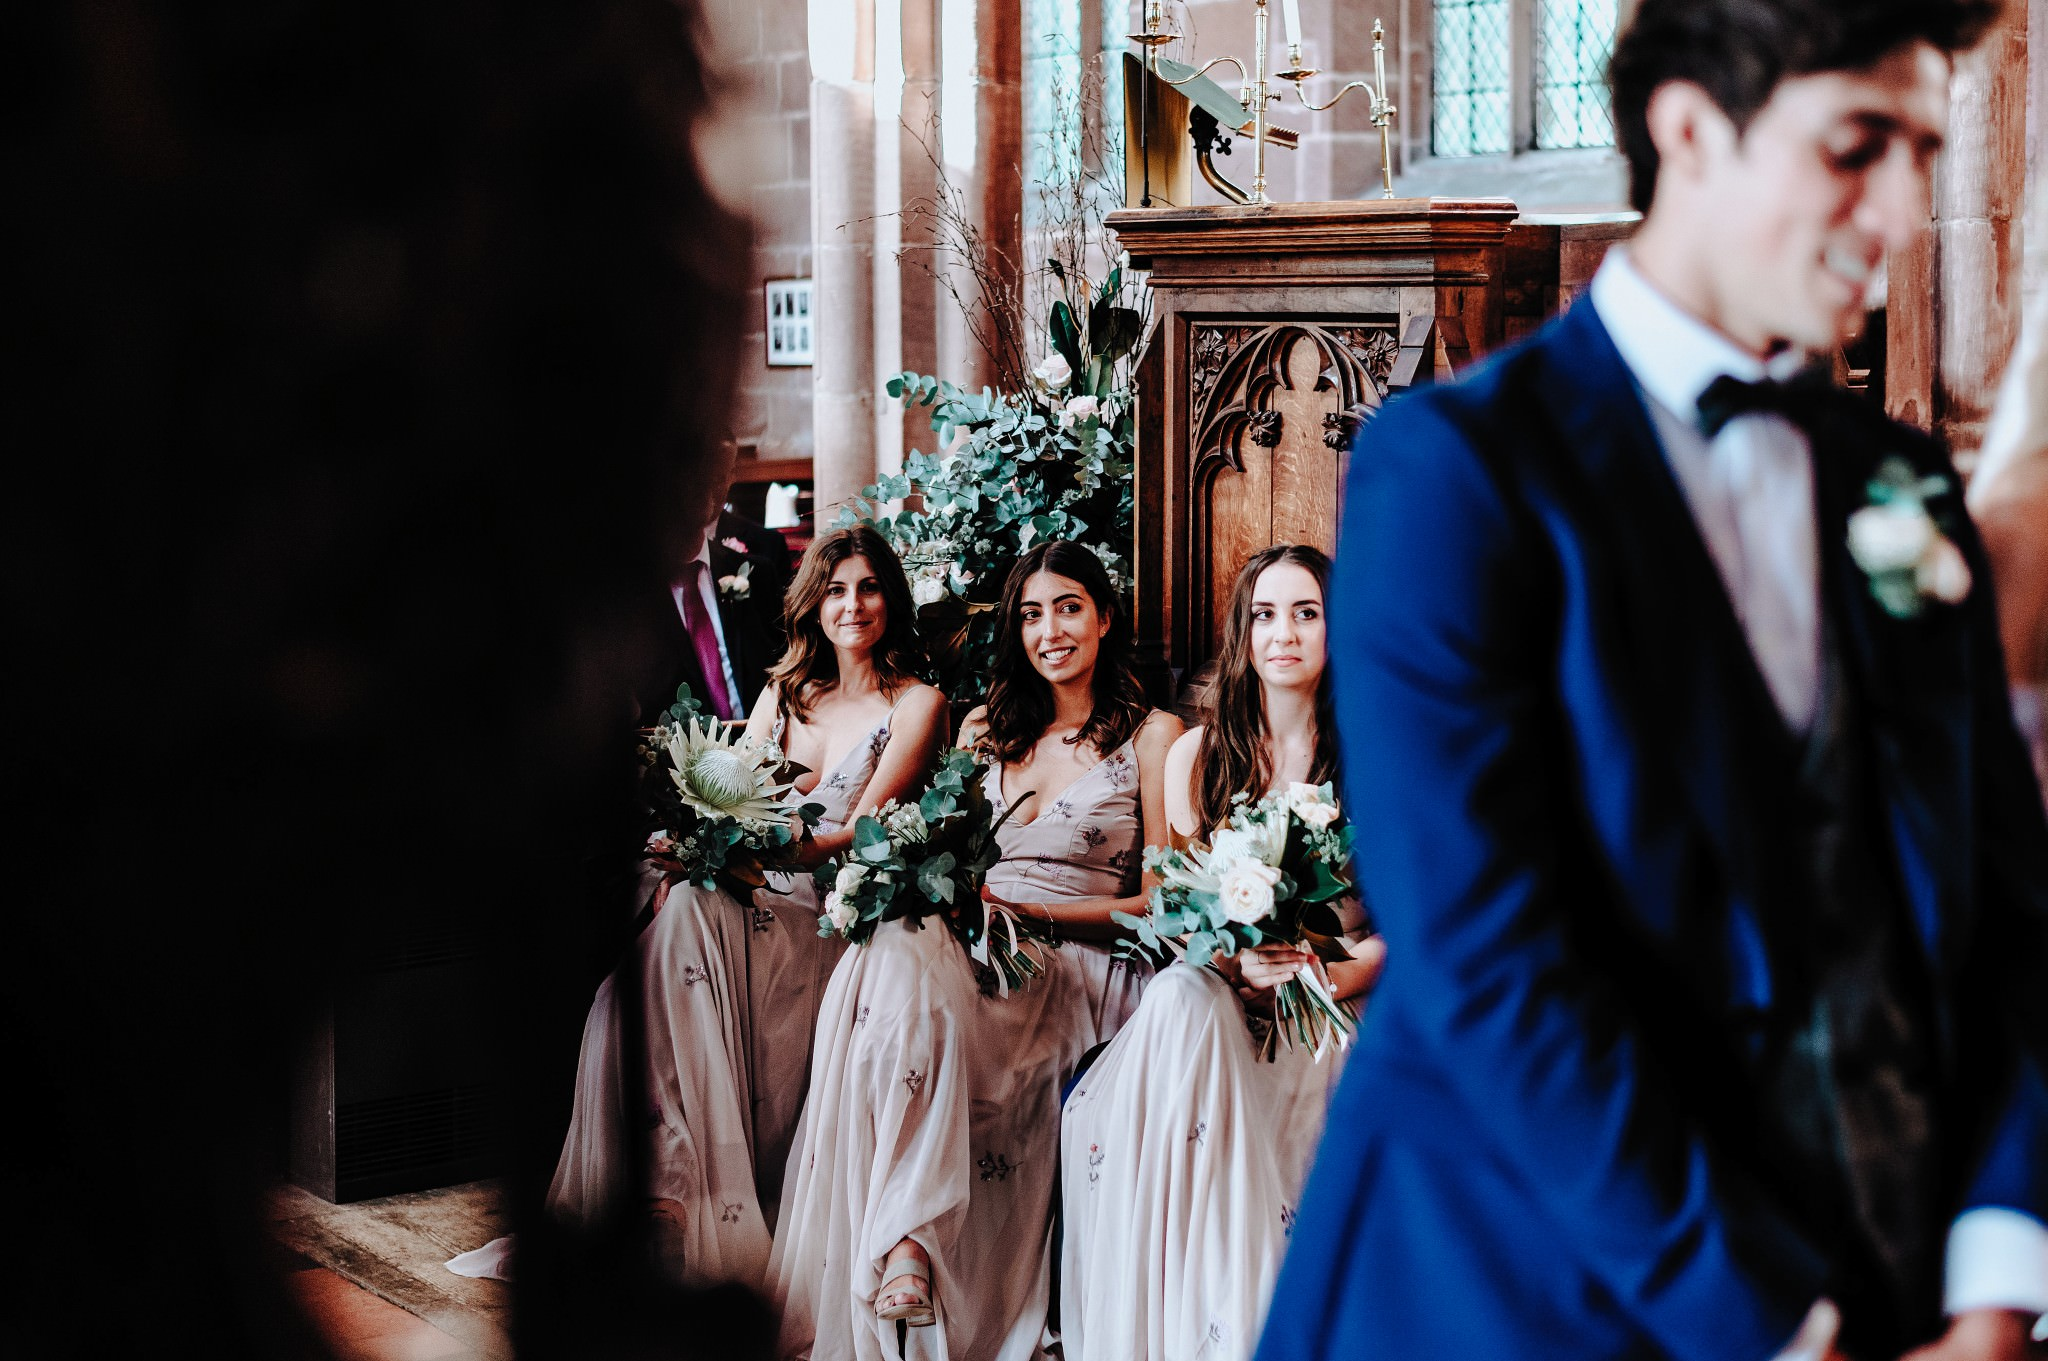 Bridesmaids looking onduring ceremony at Great Budworth church in Cheshire